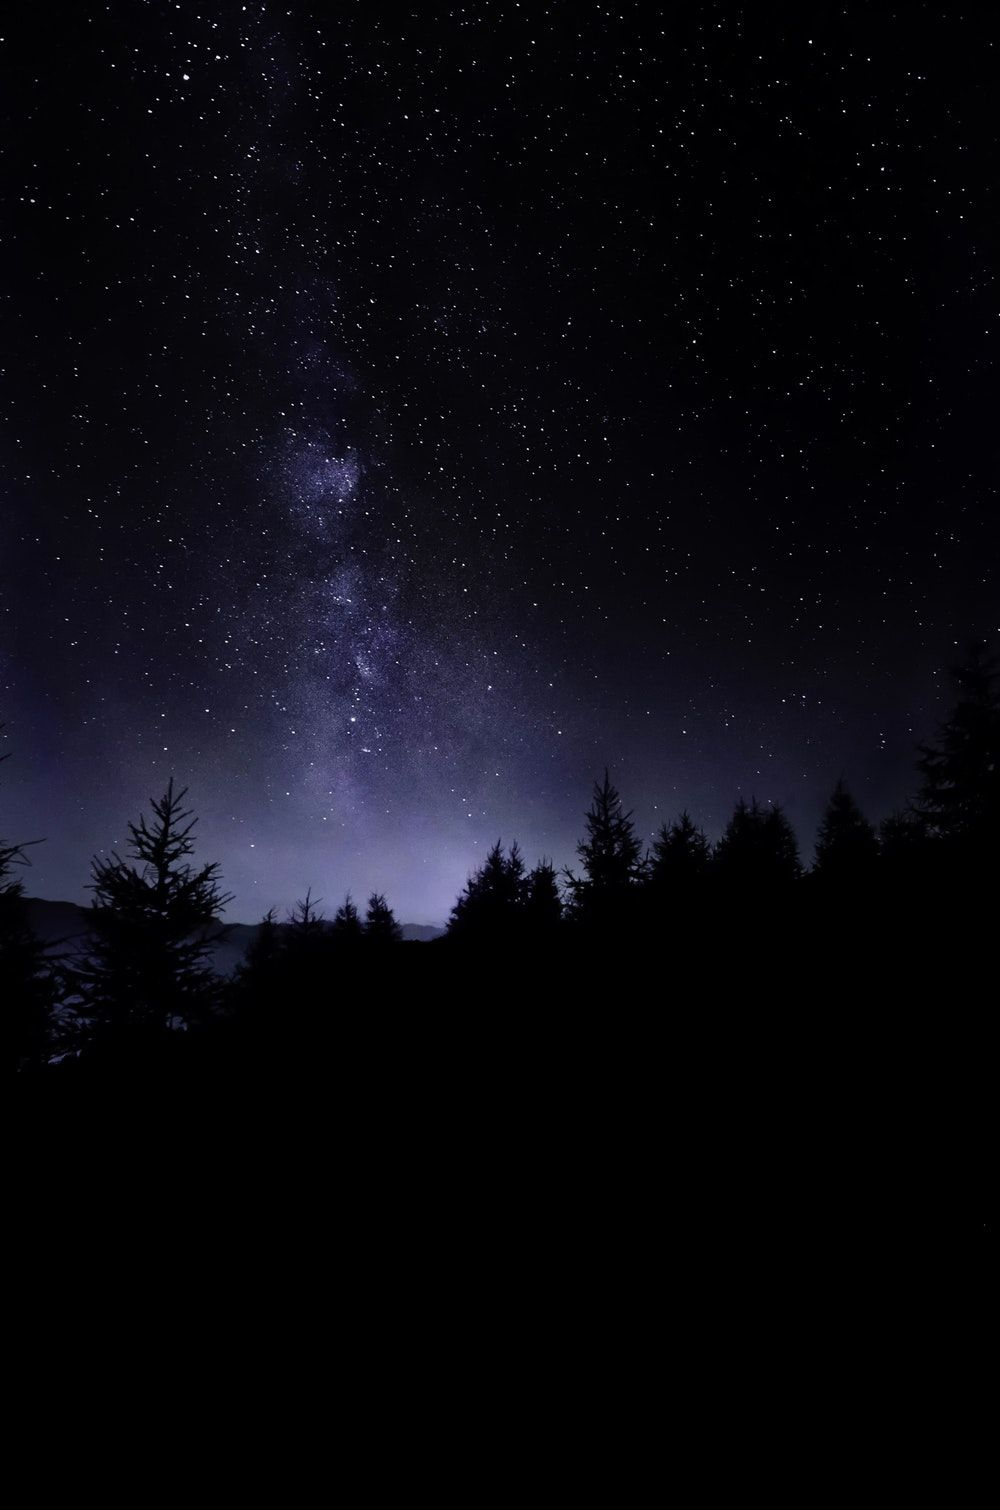 Night Time Wallpapers - Top Free Night Time Backgrounds ...